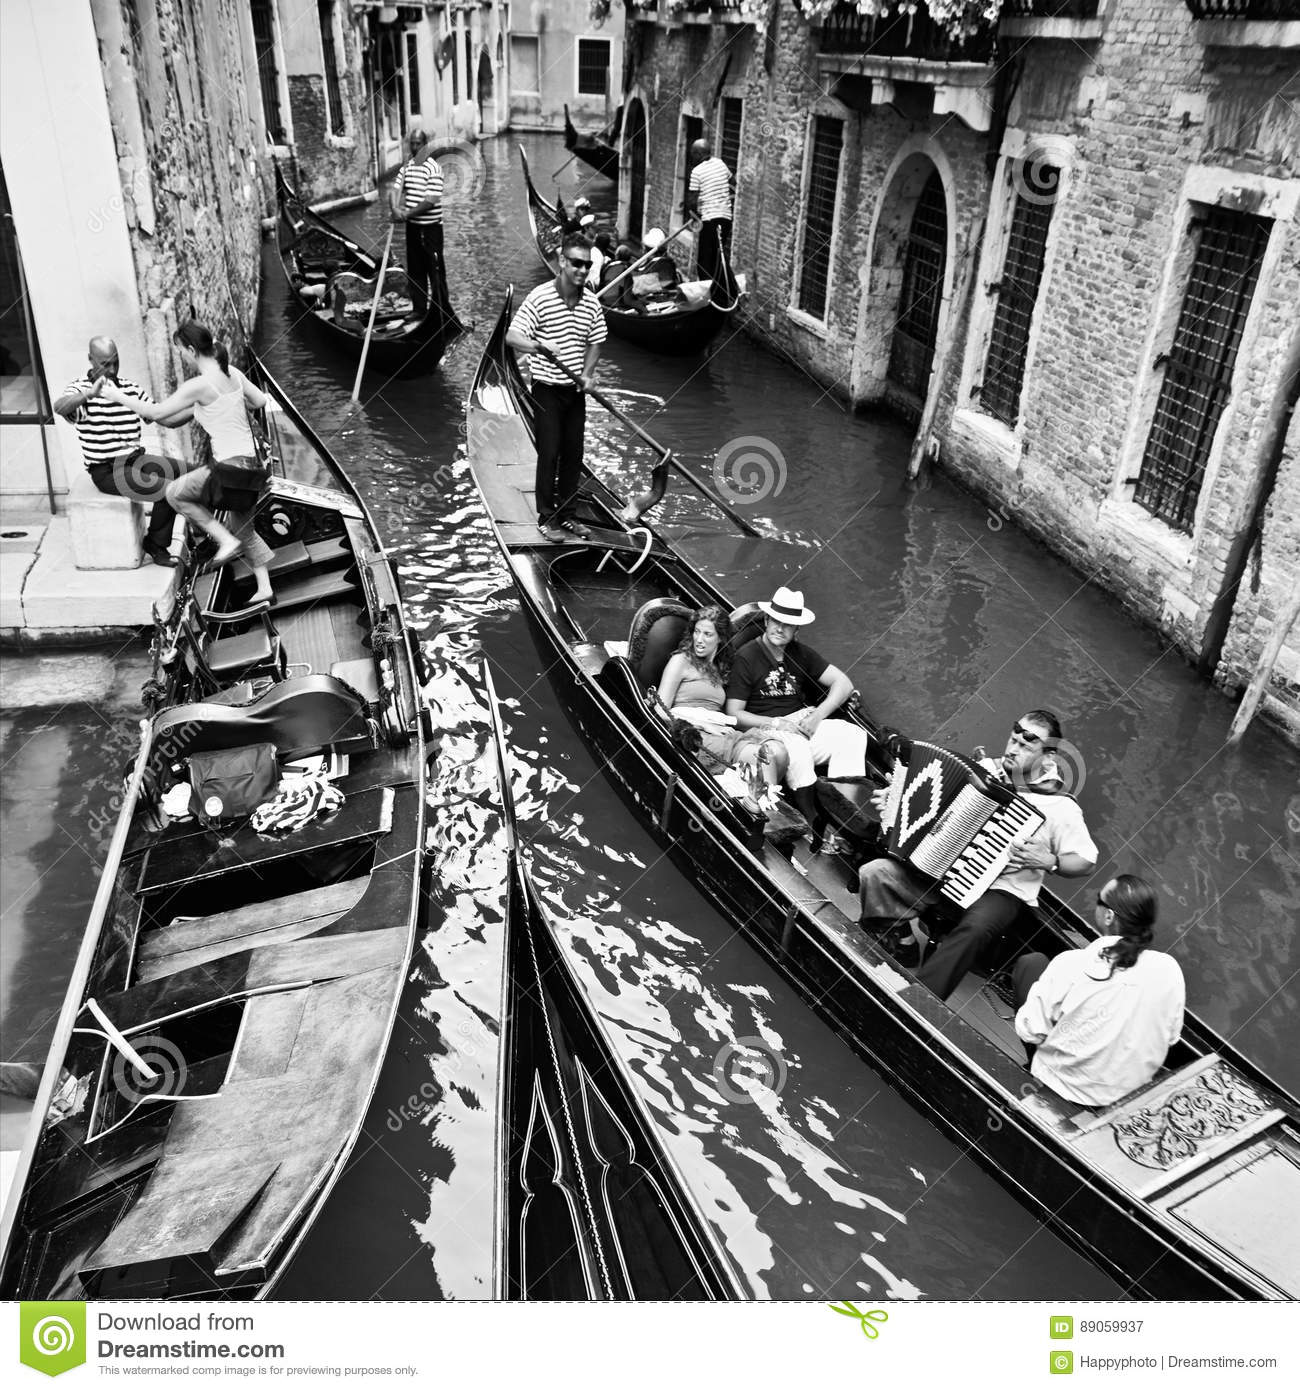 Venice, Italy - June 30, 2009: Life in Venice, travelling by gondolas with gondoliers, black and white photo.